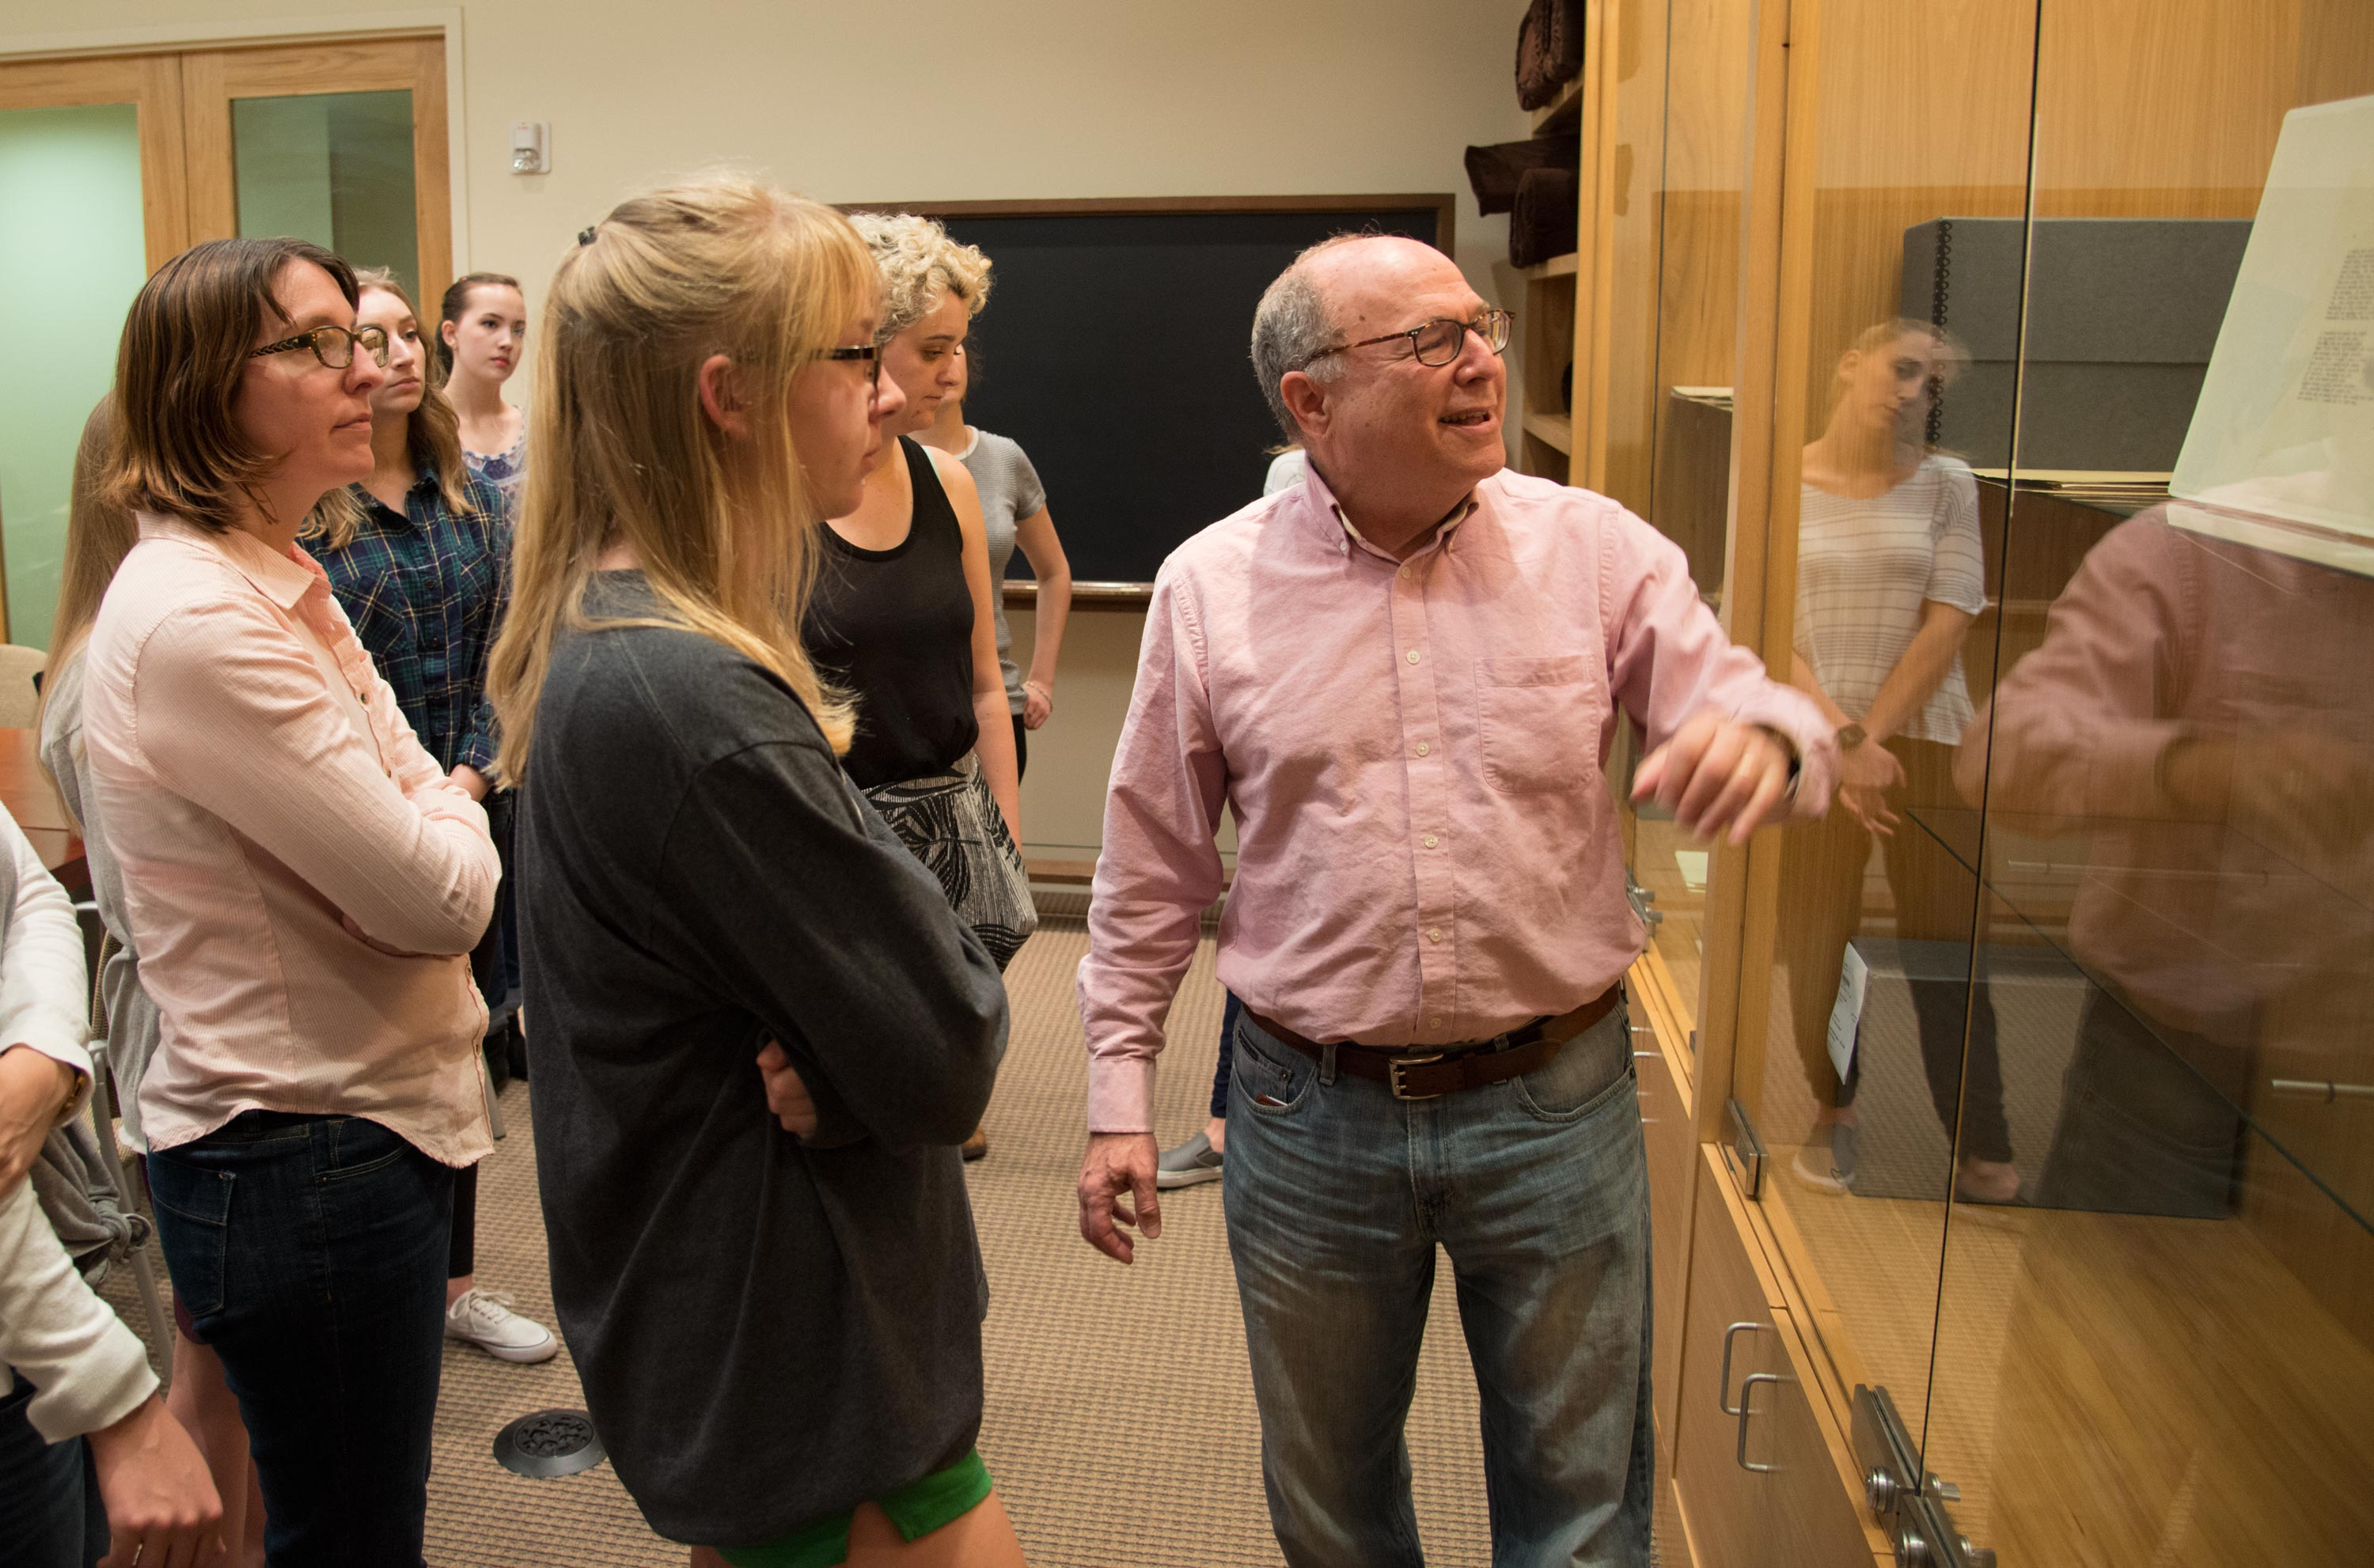 Out of the classroom, into the collections: Undergraduate class brings students to Ransom Center archives